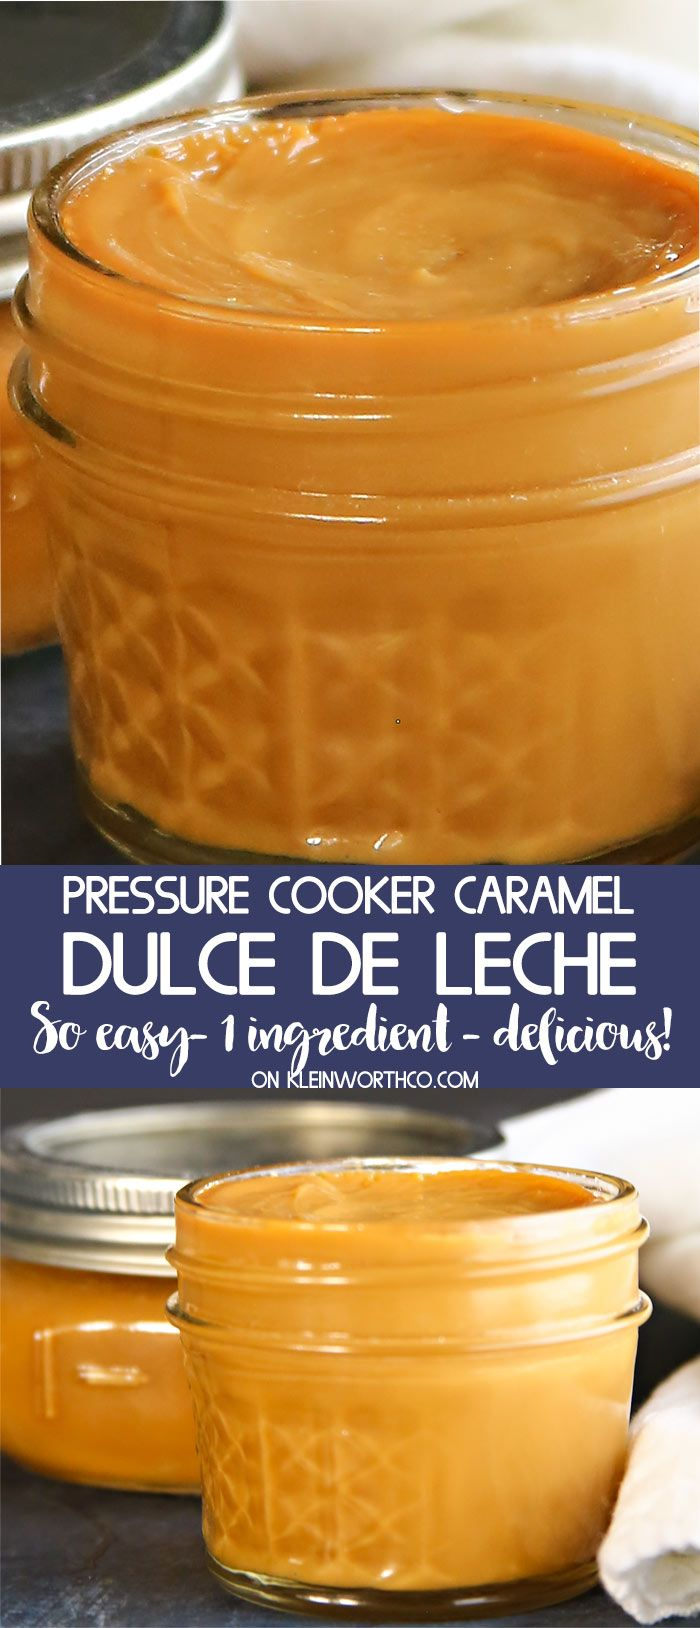 If you love homemade caramel, then you will swoon over this Pressure Cooker Caramel Dulce de Leche recipe. Simple to make & only takes 1 ingredient. #instantpot #caramel #pressurecooker #dulcedeleche